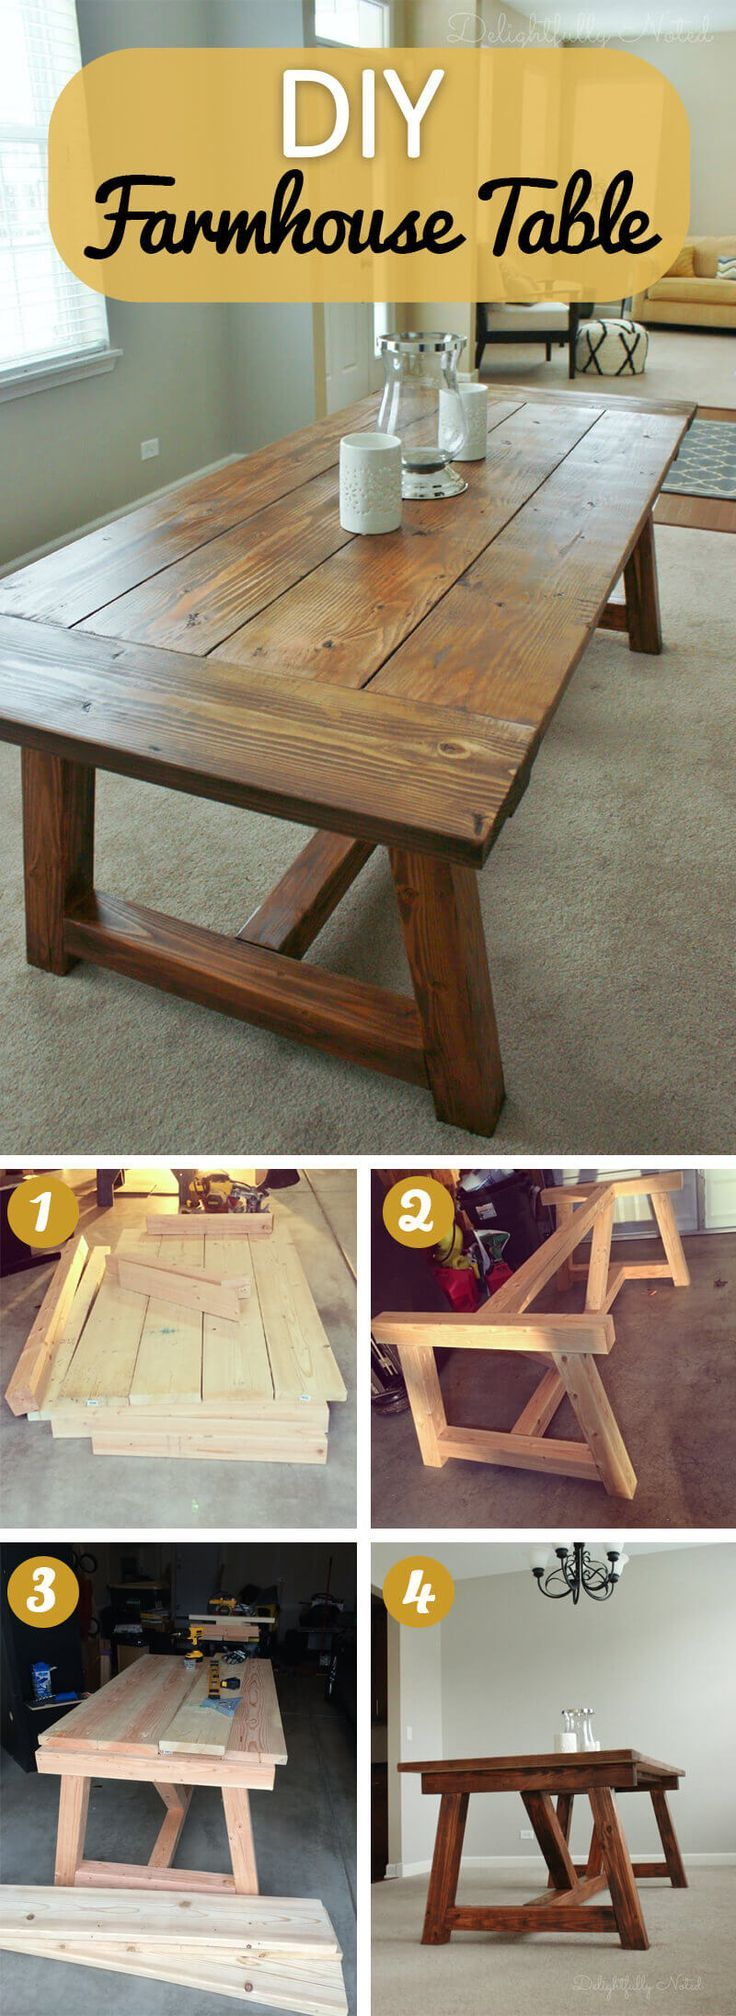 15+ Rustic DIY Farmhouse Table Ideas For Your Dinning Room